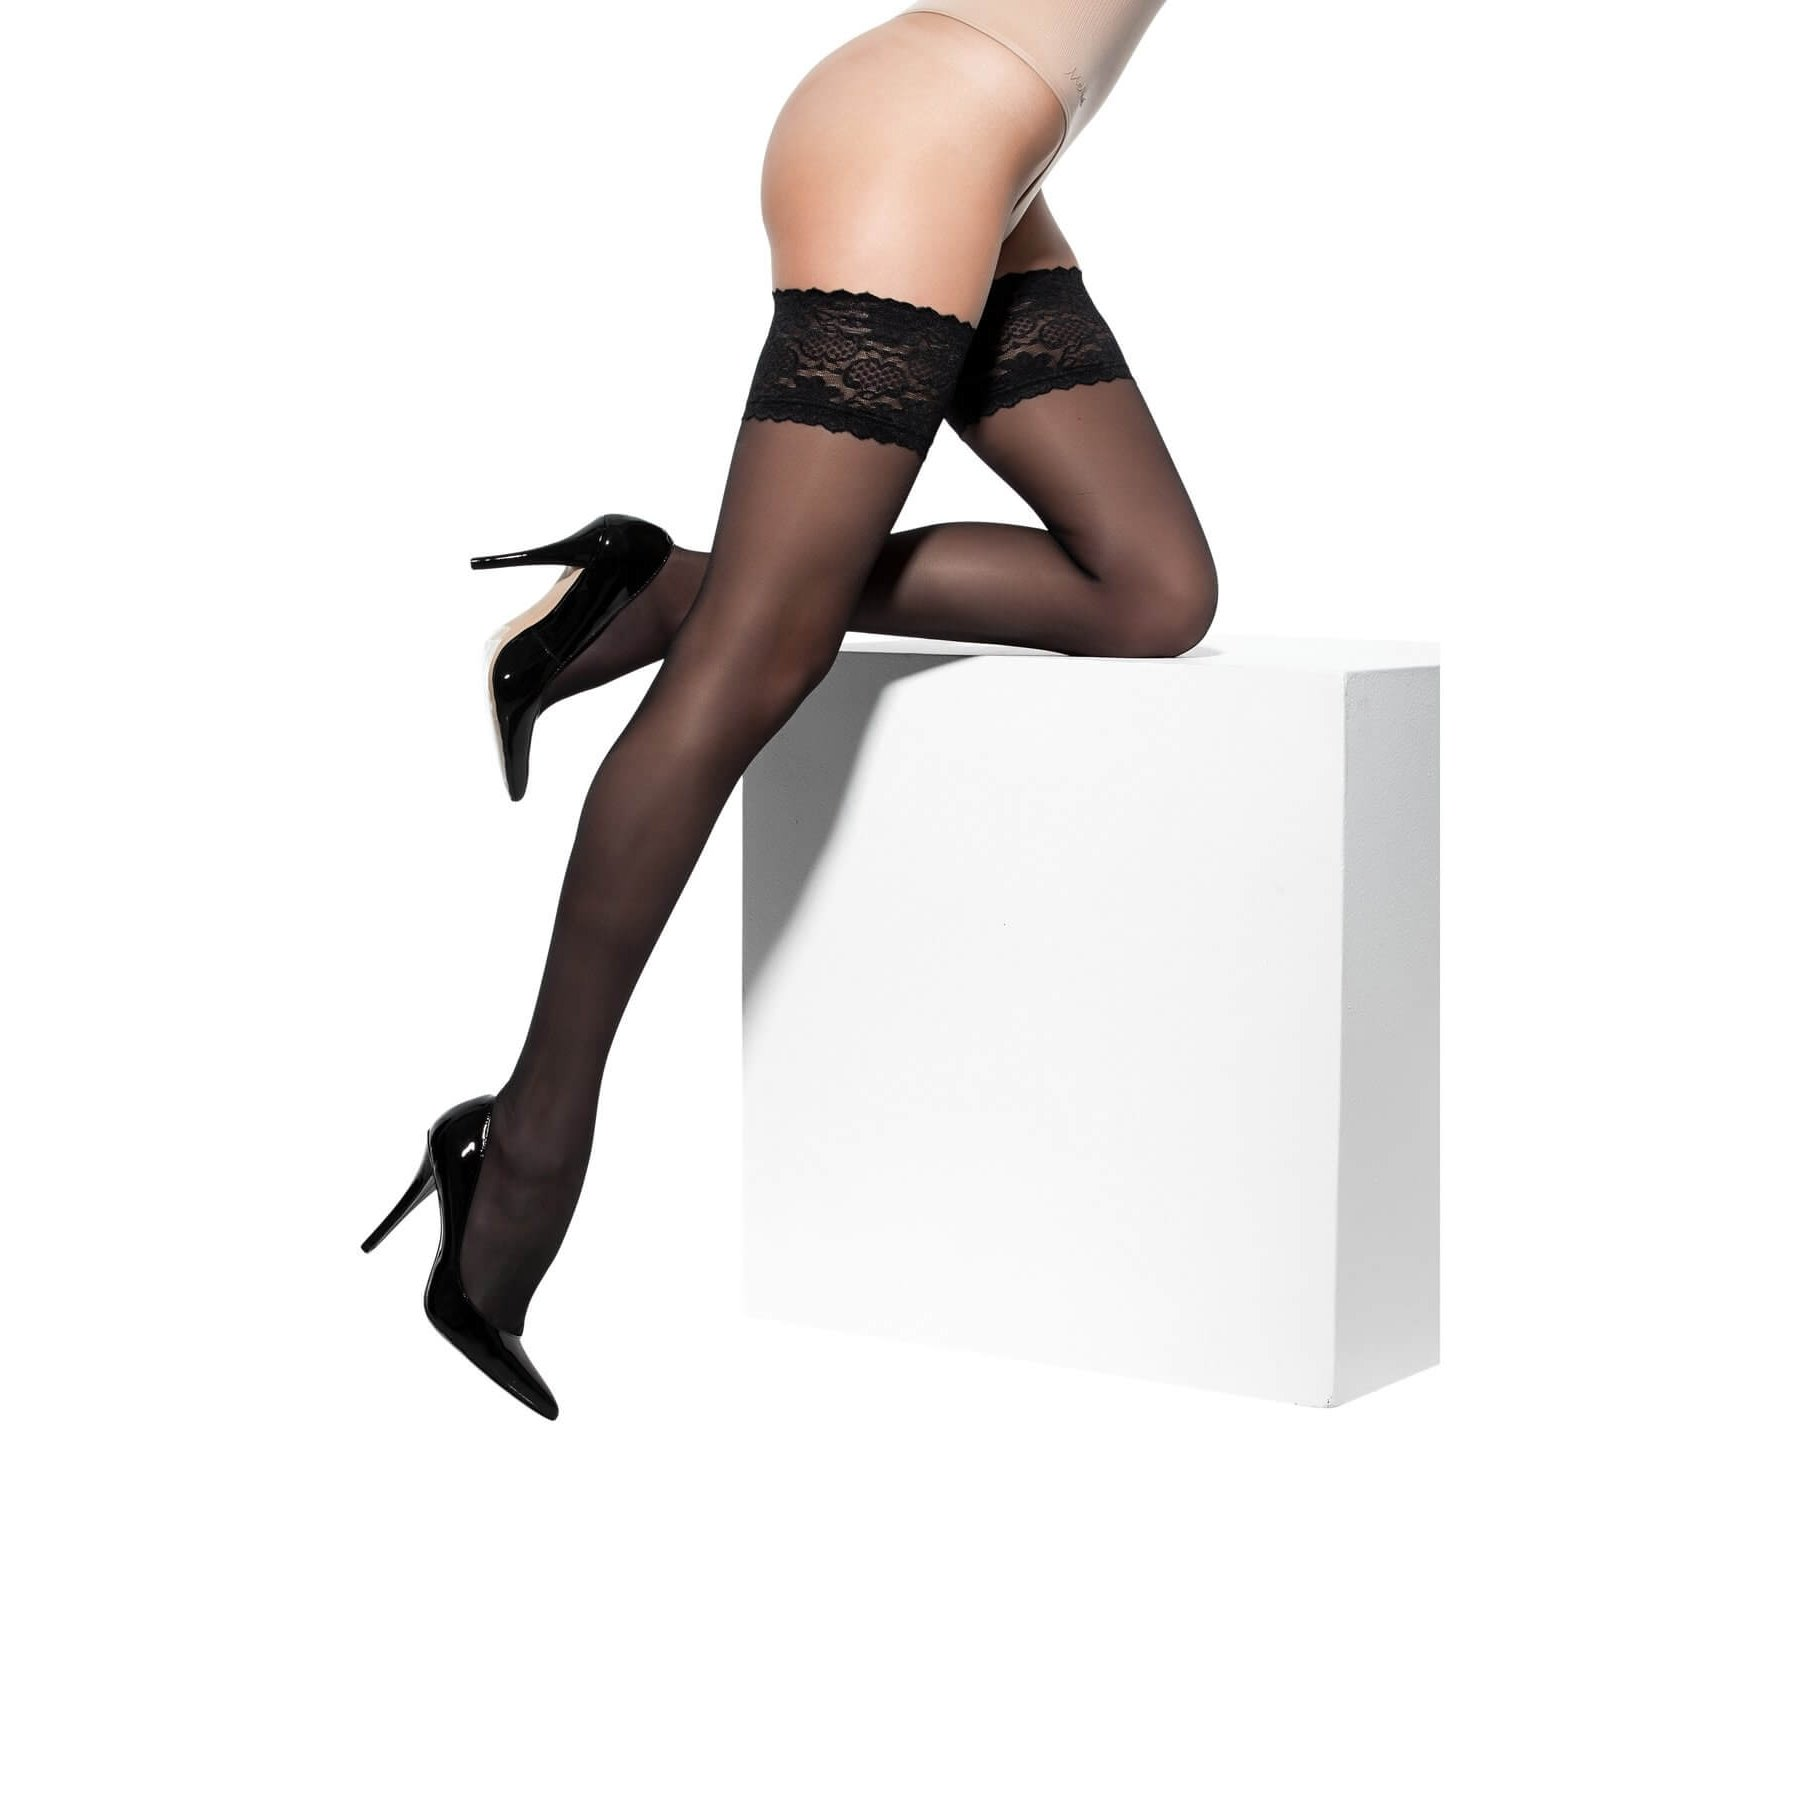 9931a4459b2 SOLIDEA Marilyn 70 Sheer compression hold-up stockings